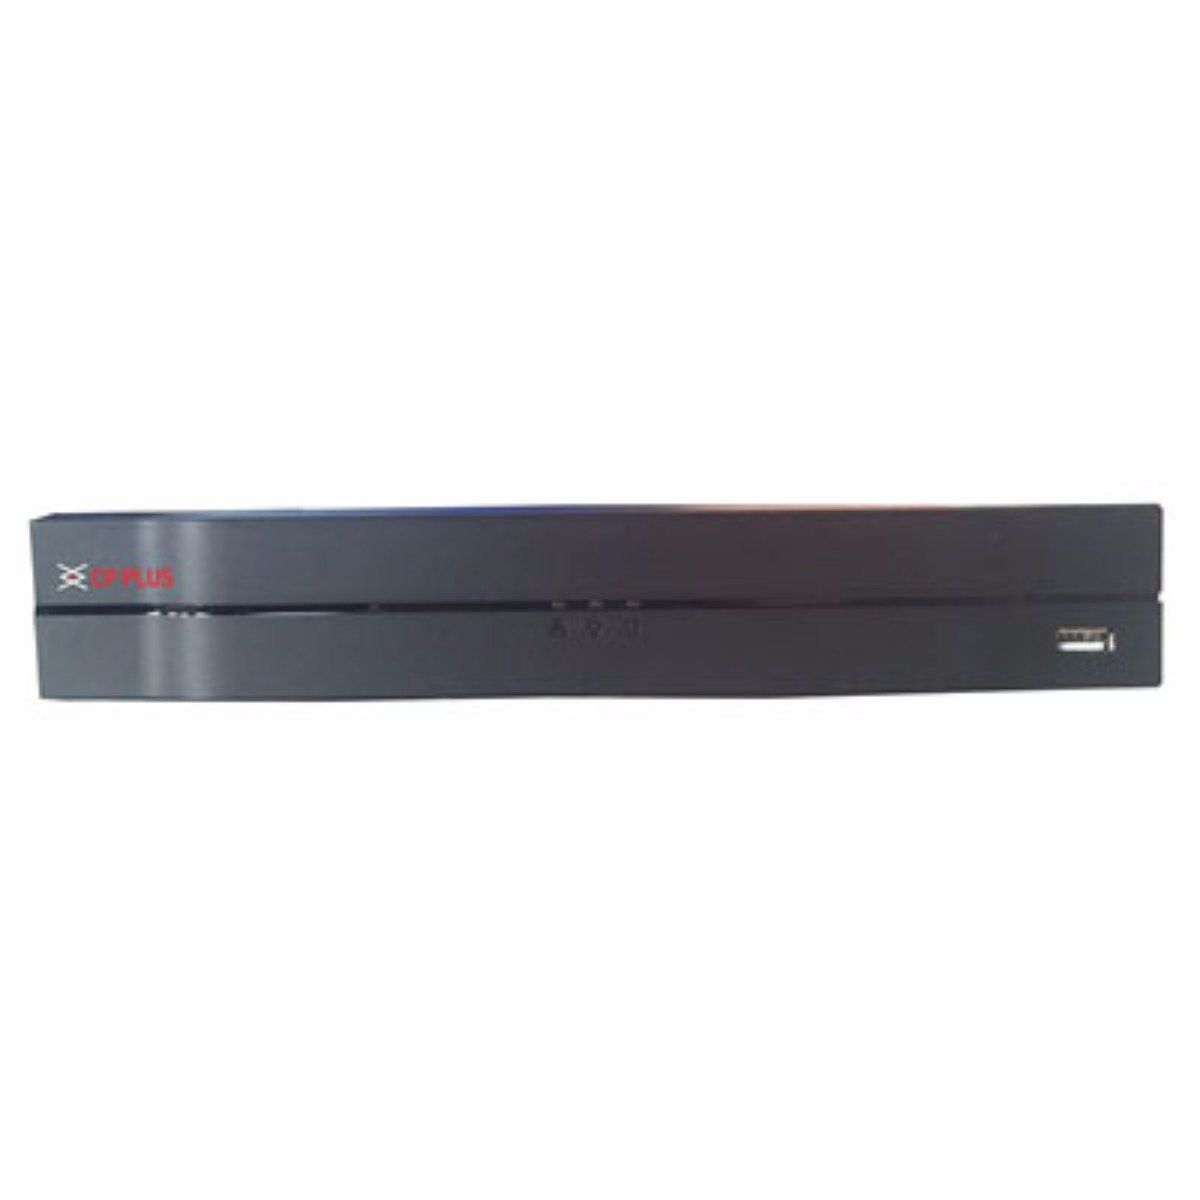 CP Plus CP-UVR-0401E1-S (without Harddisk) 4 Channel DVR (Black)